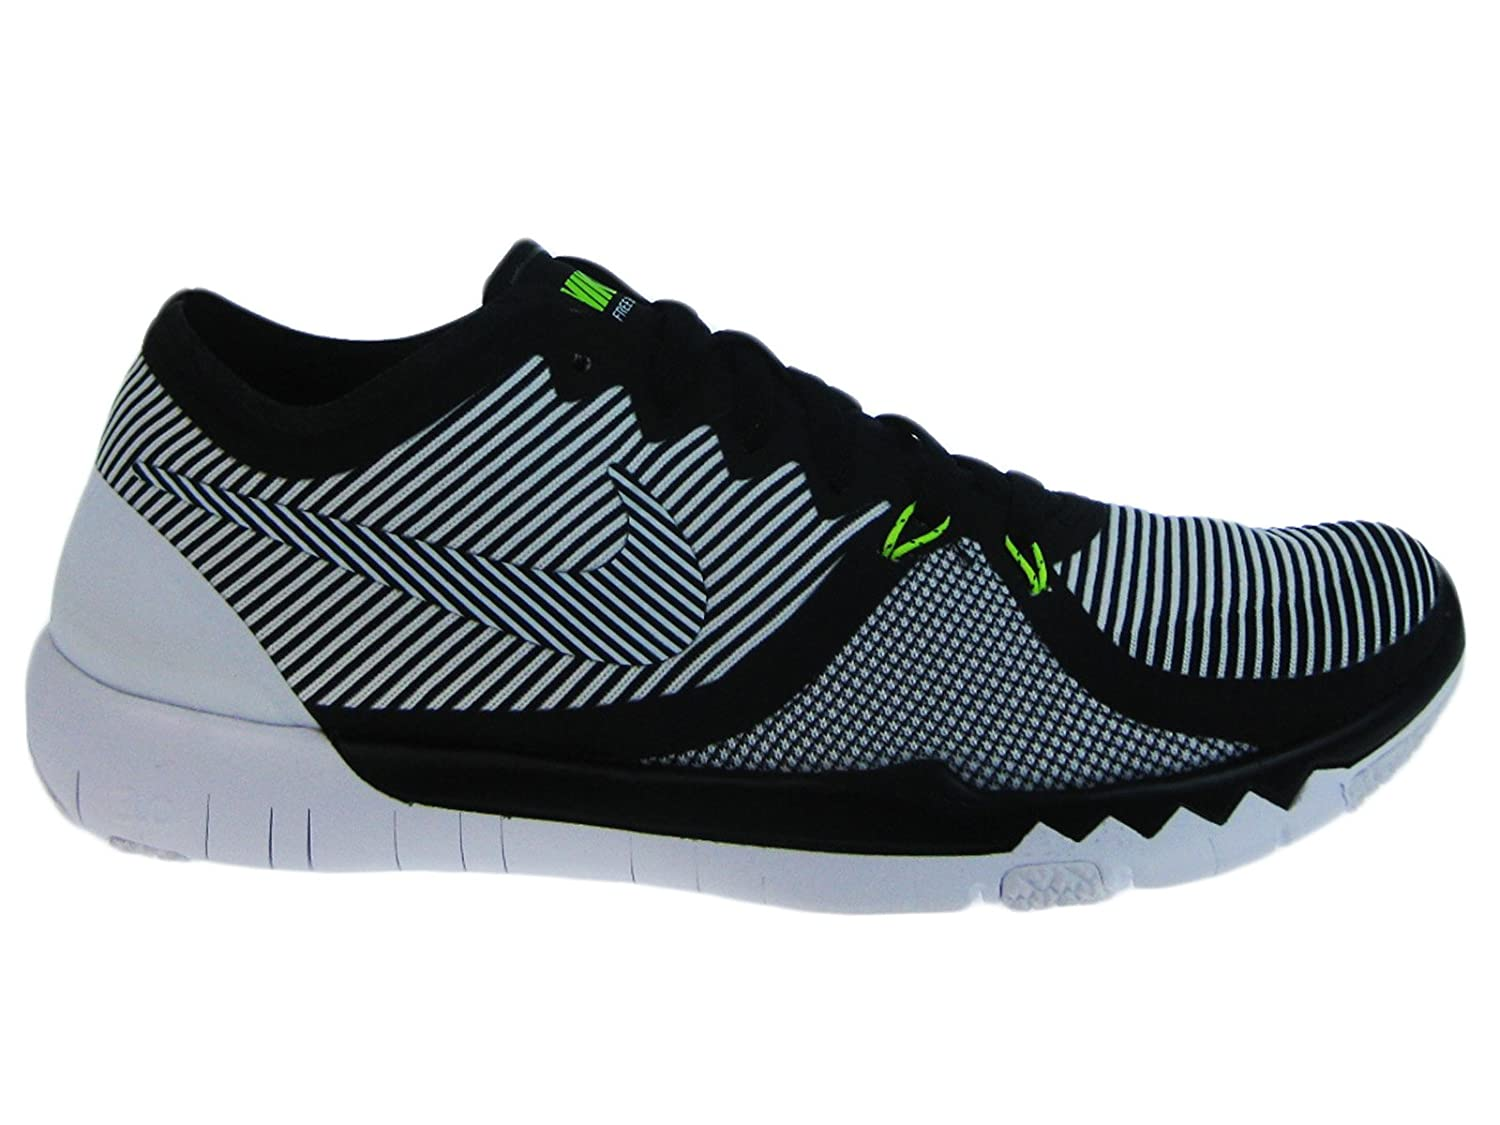 31 best images about Nike Free 3.0 V5 on Pinterest Woman shoes